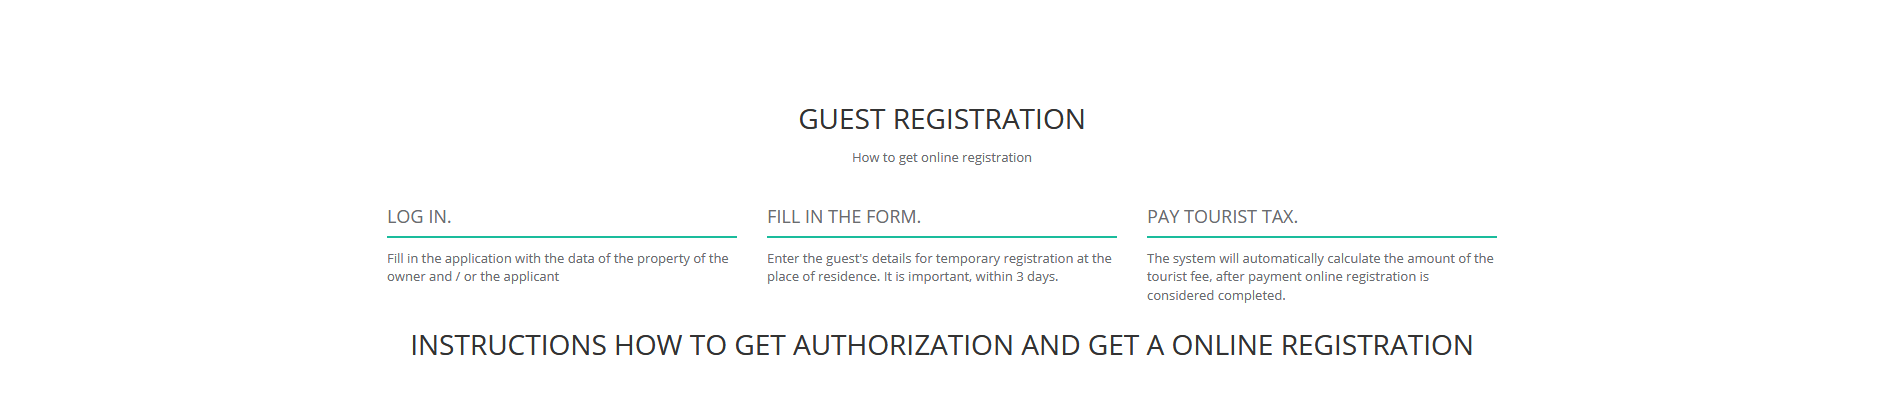 Registration in Uzbekistan - new updated rules - 1